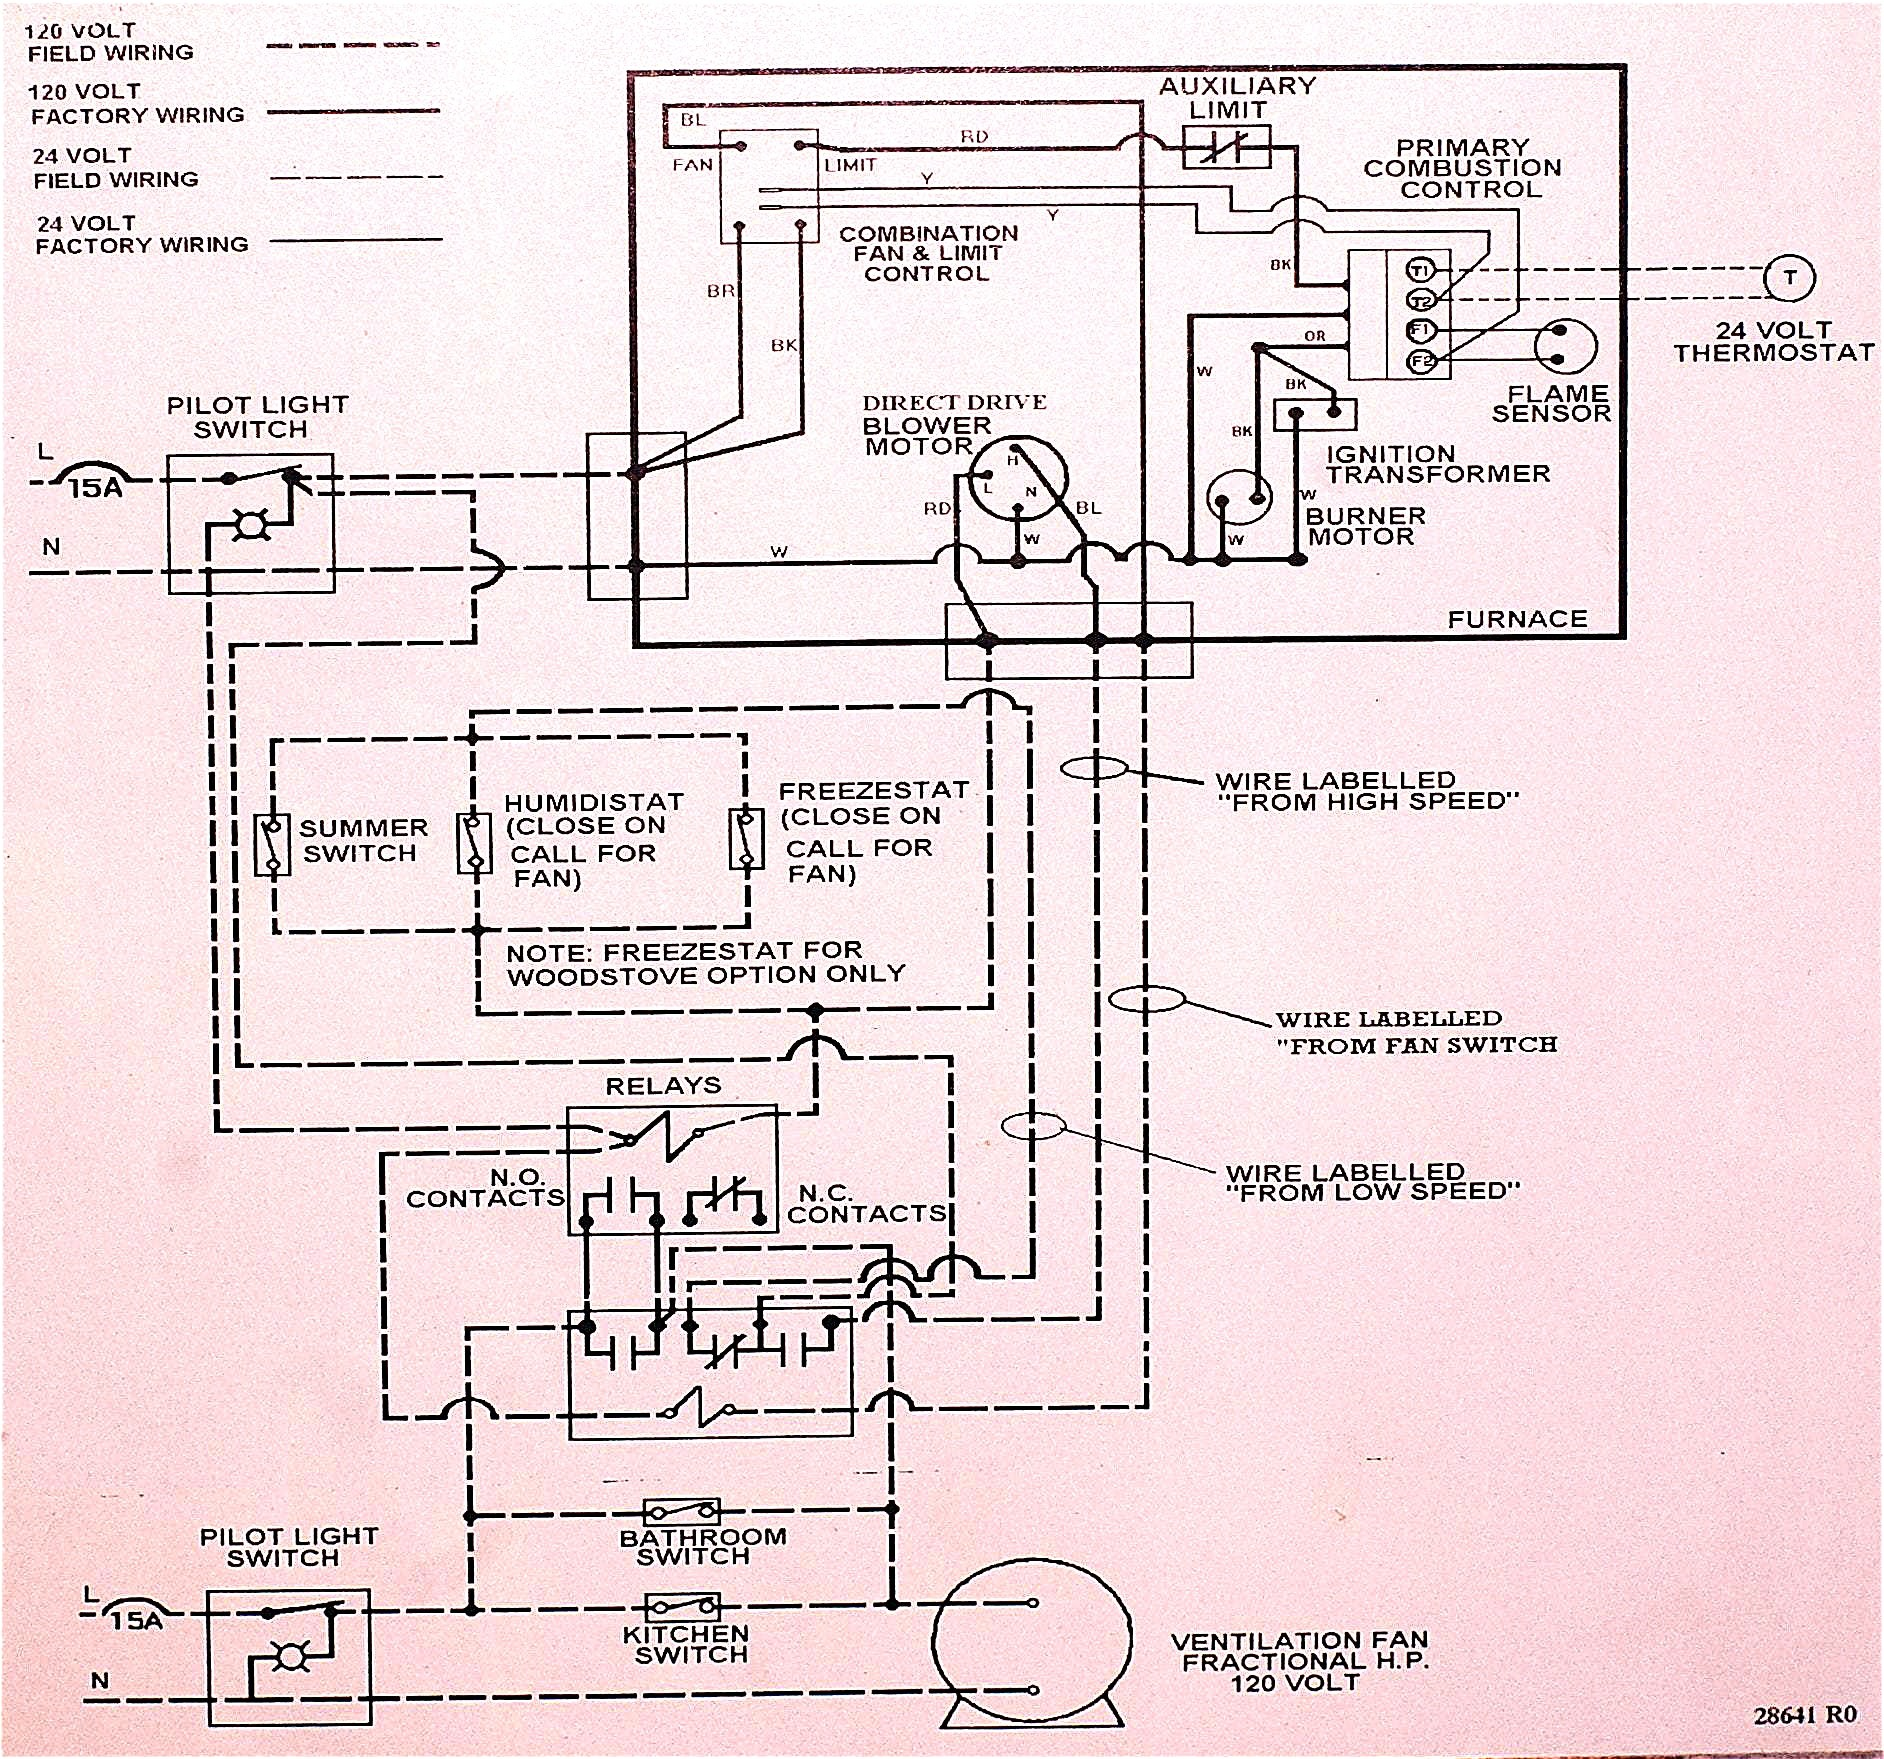 Coleman Furnace Wiring Diagram Gas Furnace Wiring Diagram Delightful Bright for Coleman the Inside Of Coleman Furnace Wiring Diagram